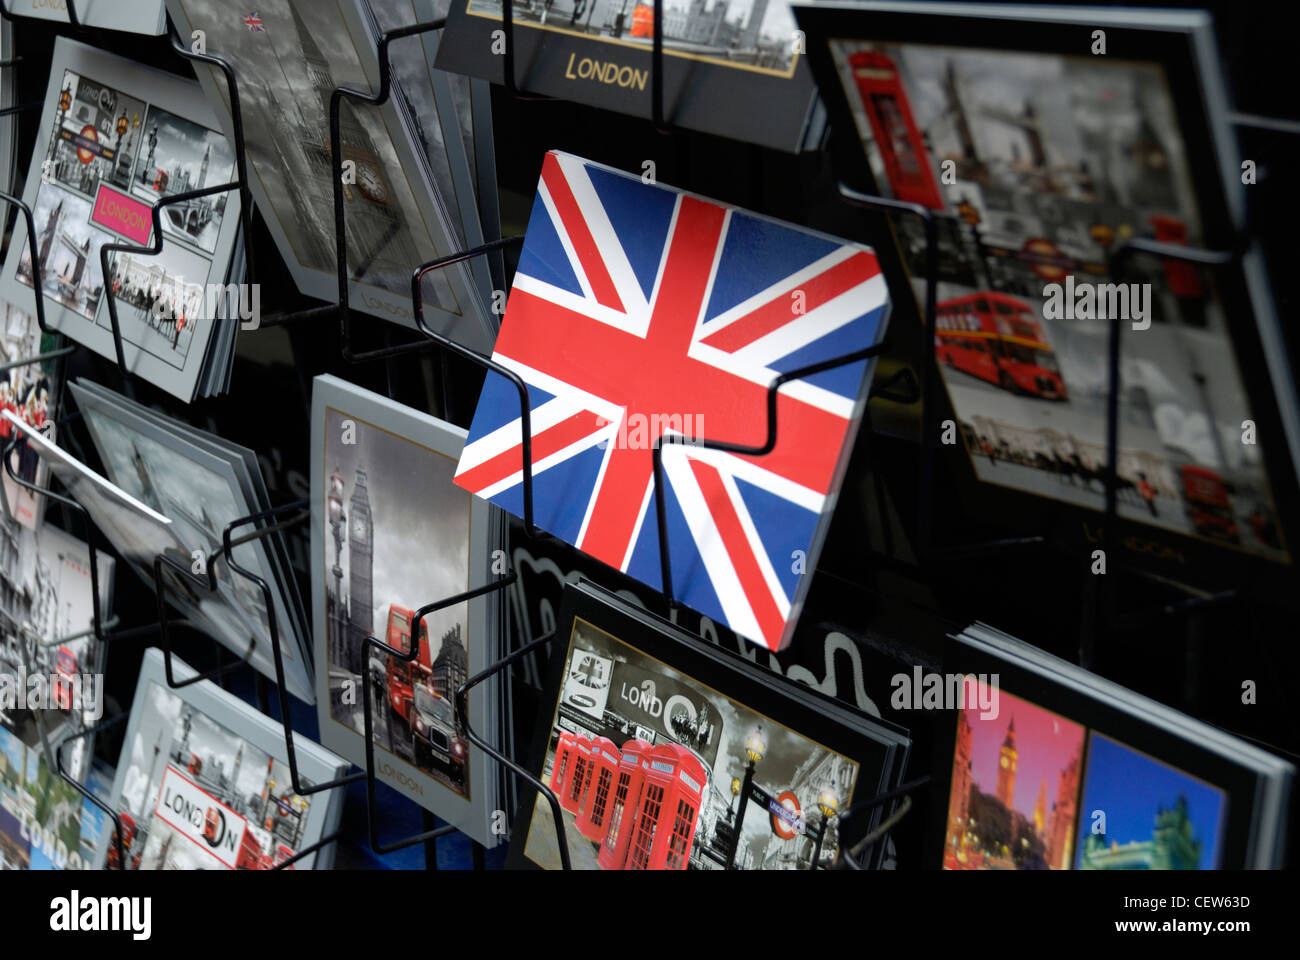 British postcards - Stock Image